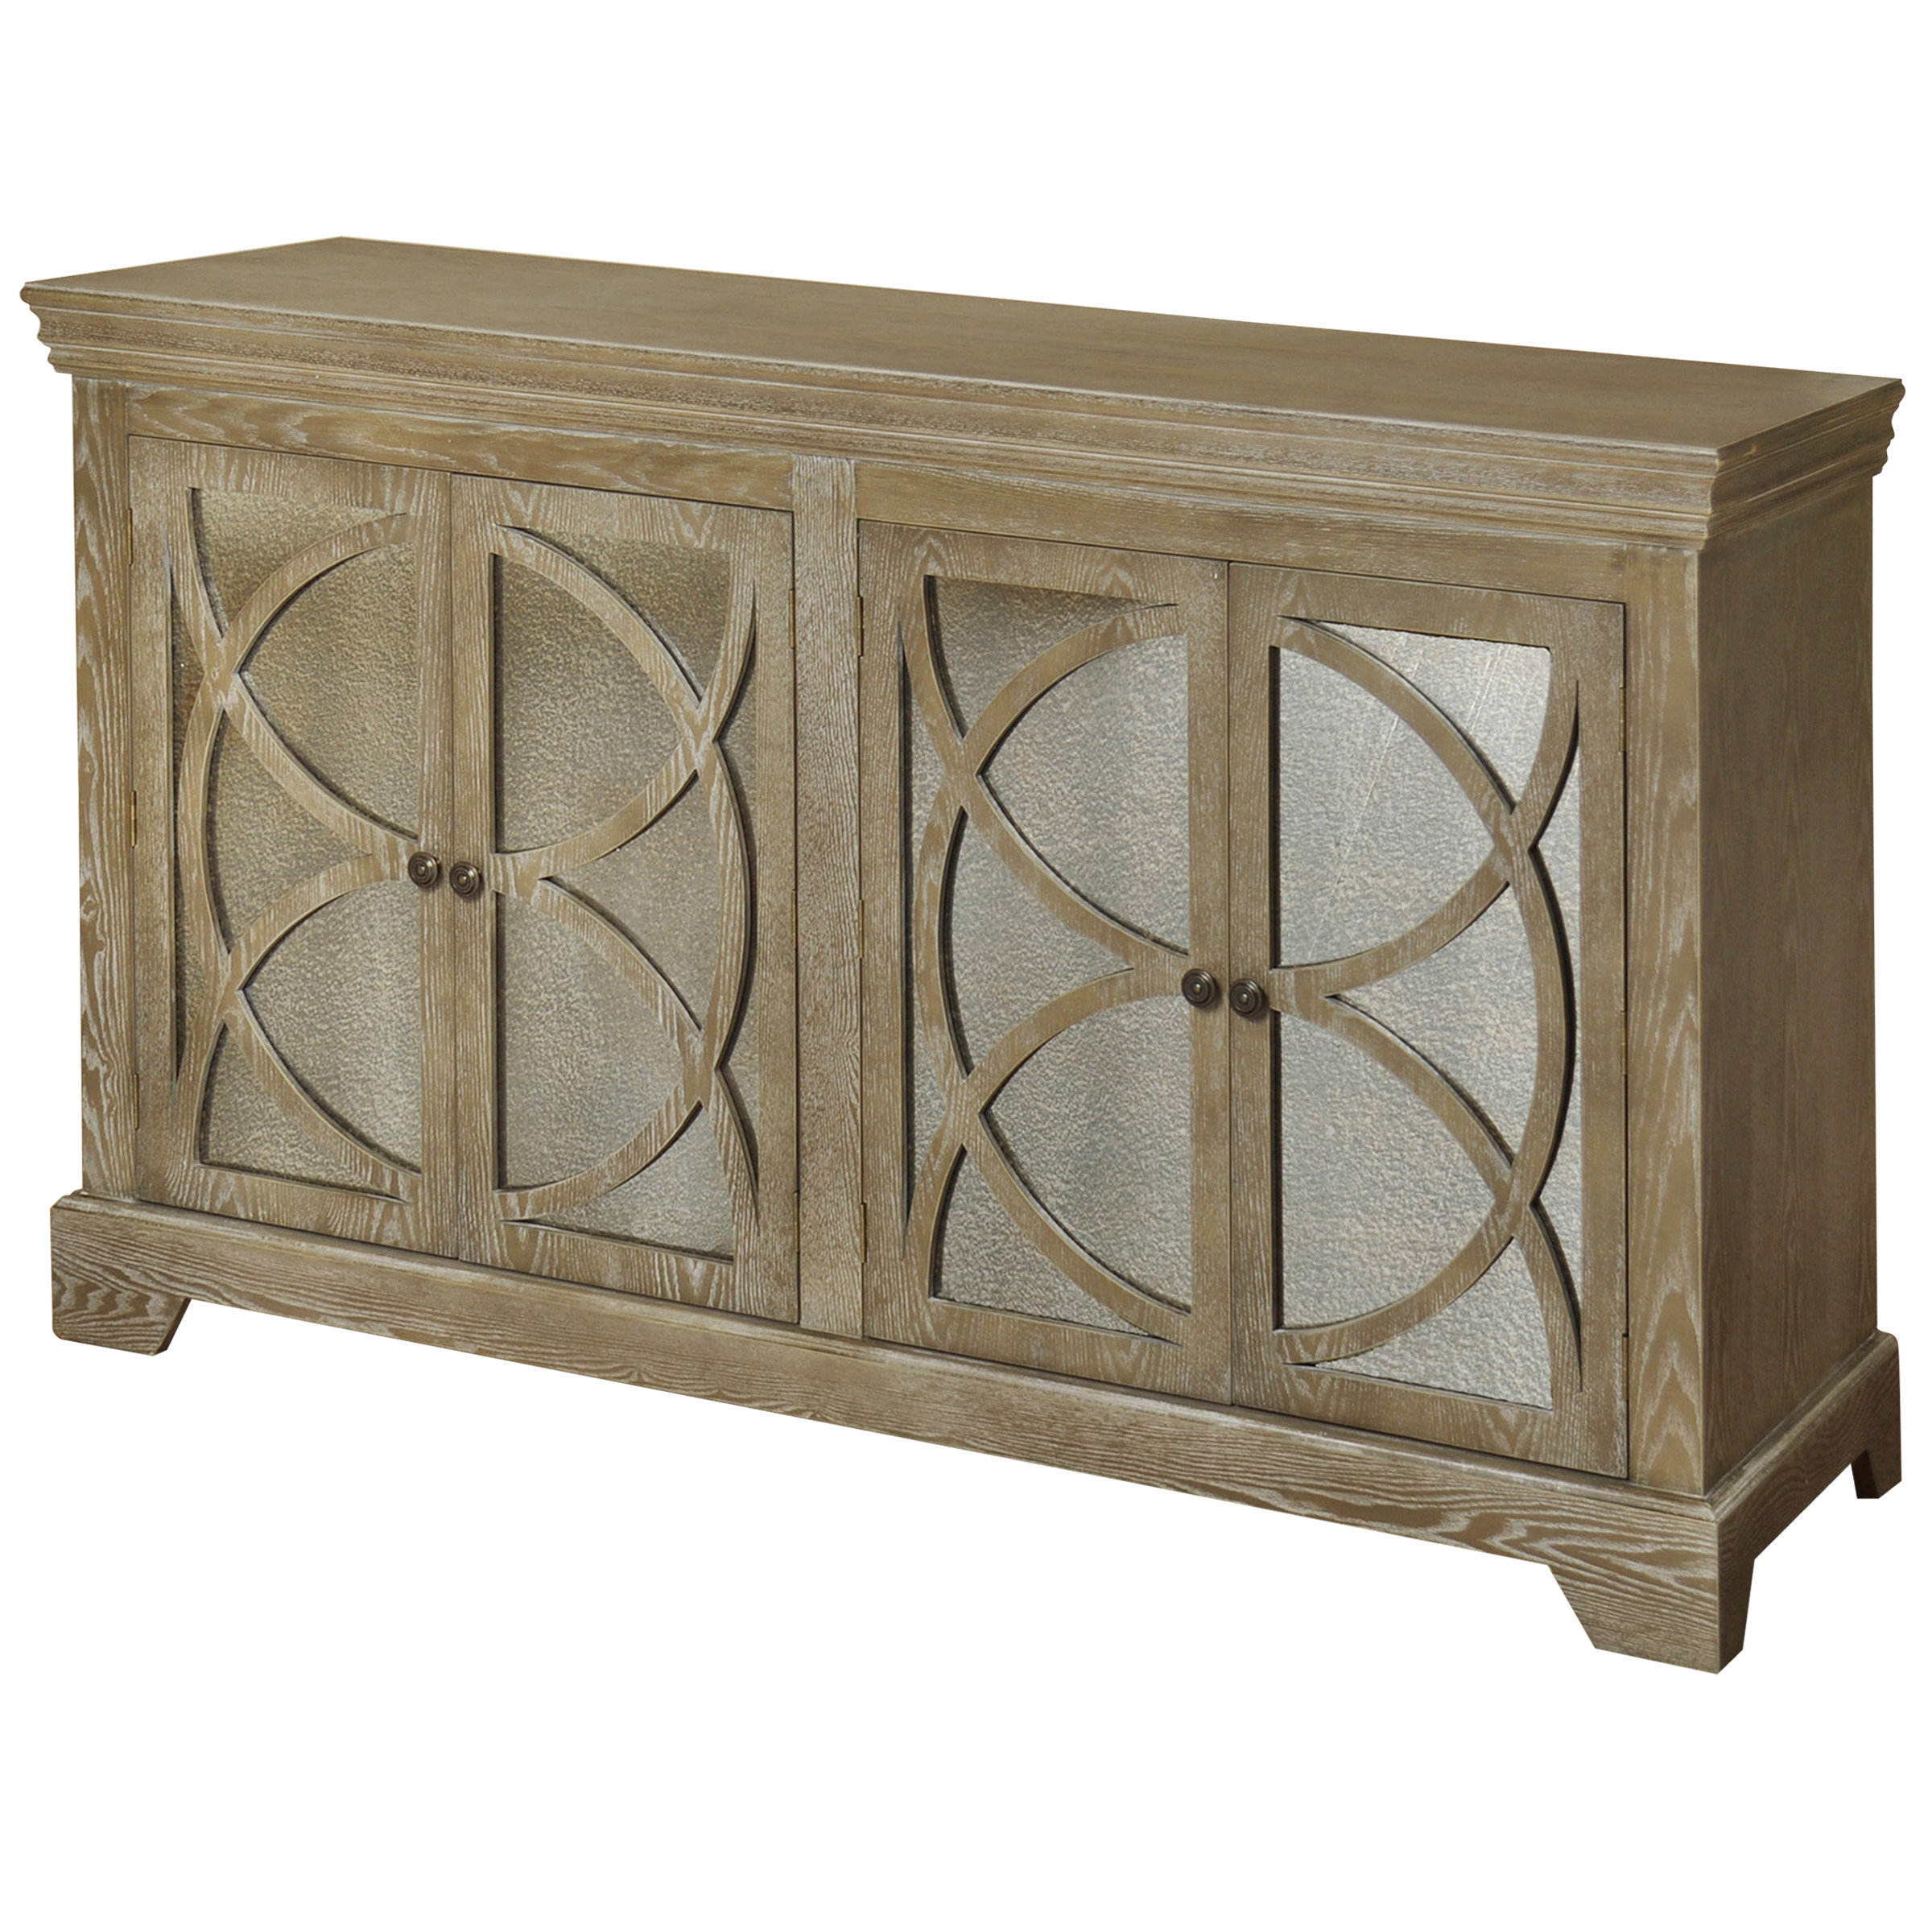 60 Inch Credenza | Wayfair Pertaining To Most Up To Date Senda Credenzas (View 4 of 20)